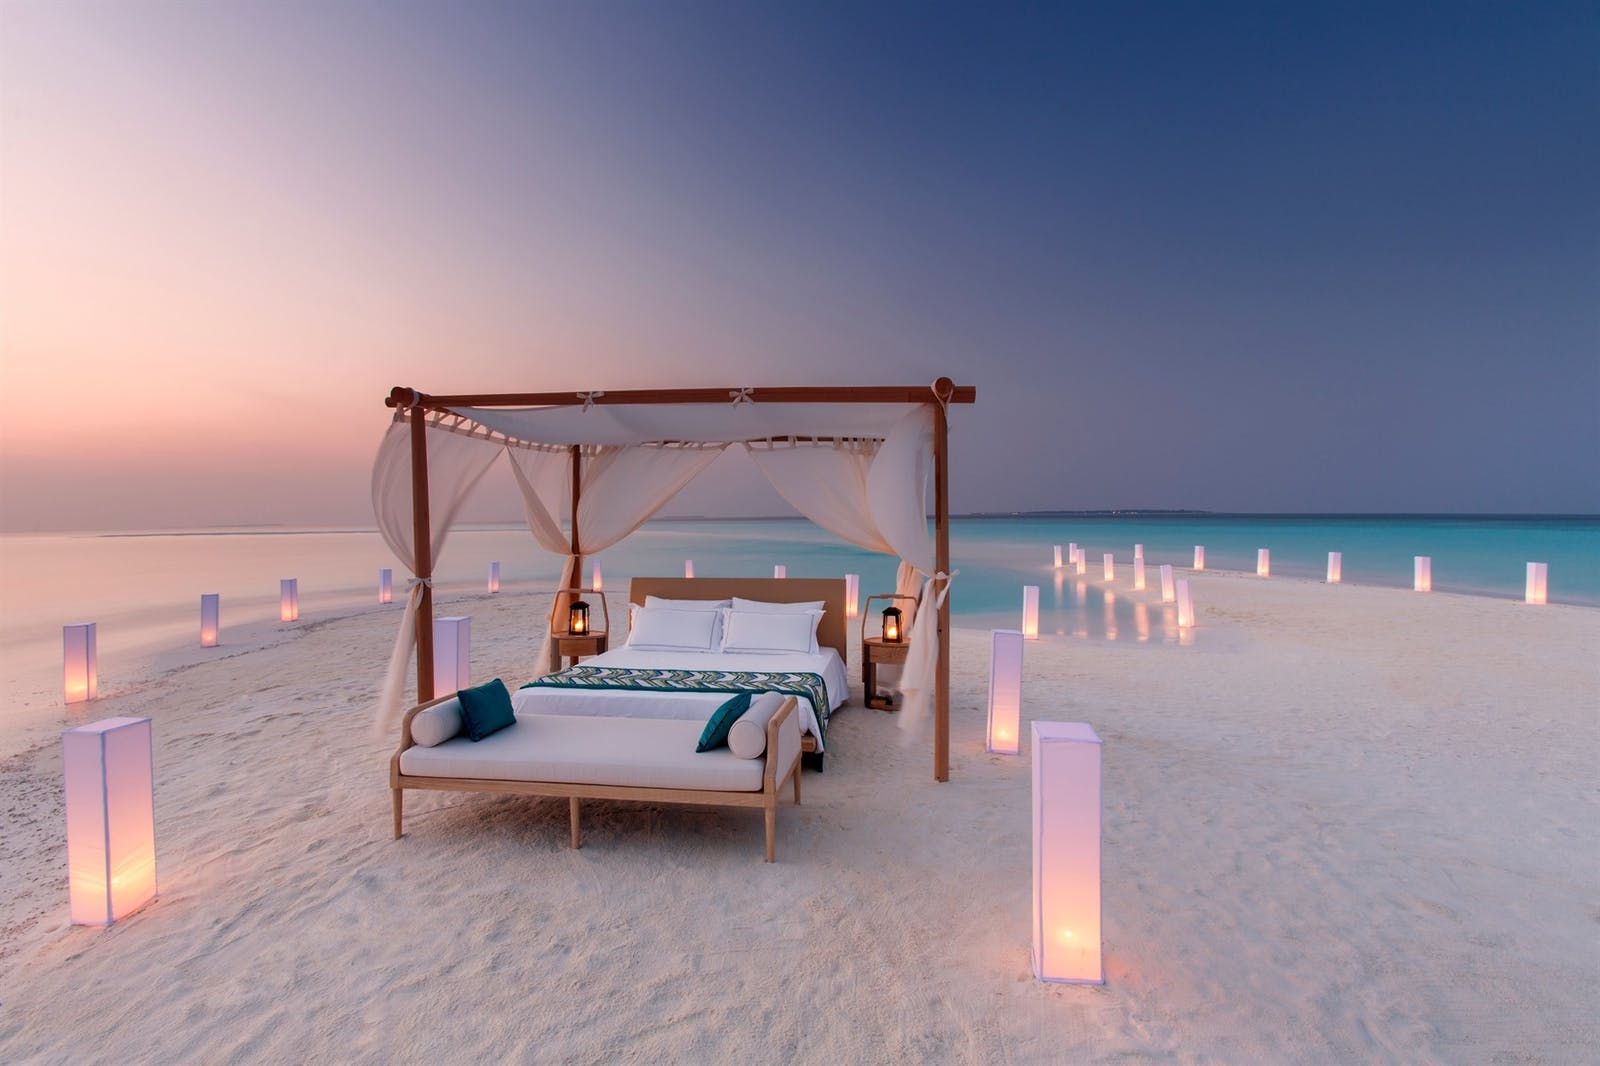 Sleep under the stars at Milaidhoo, Maldives